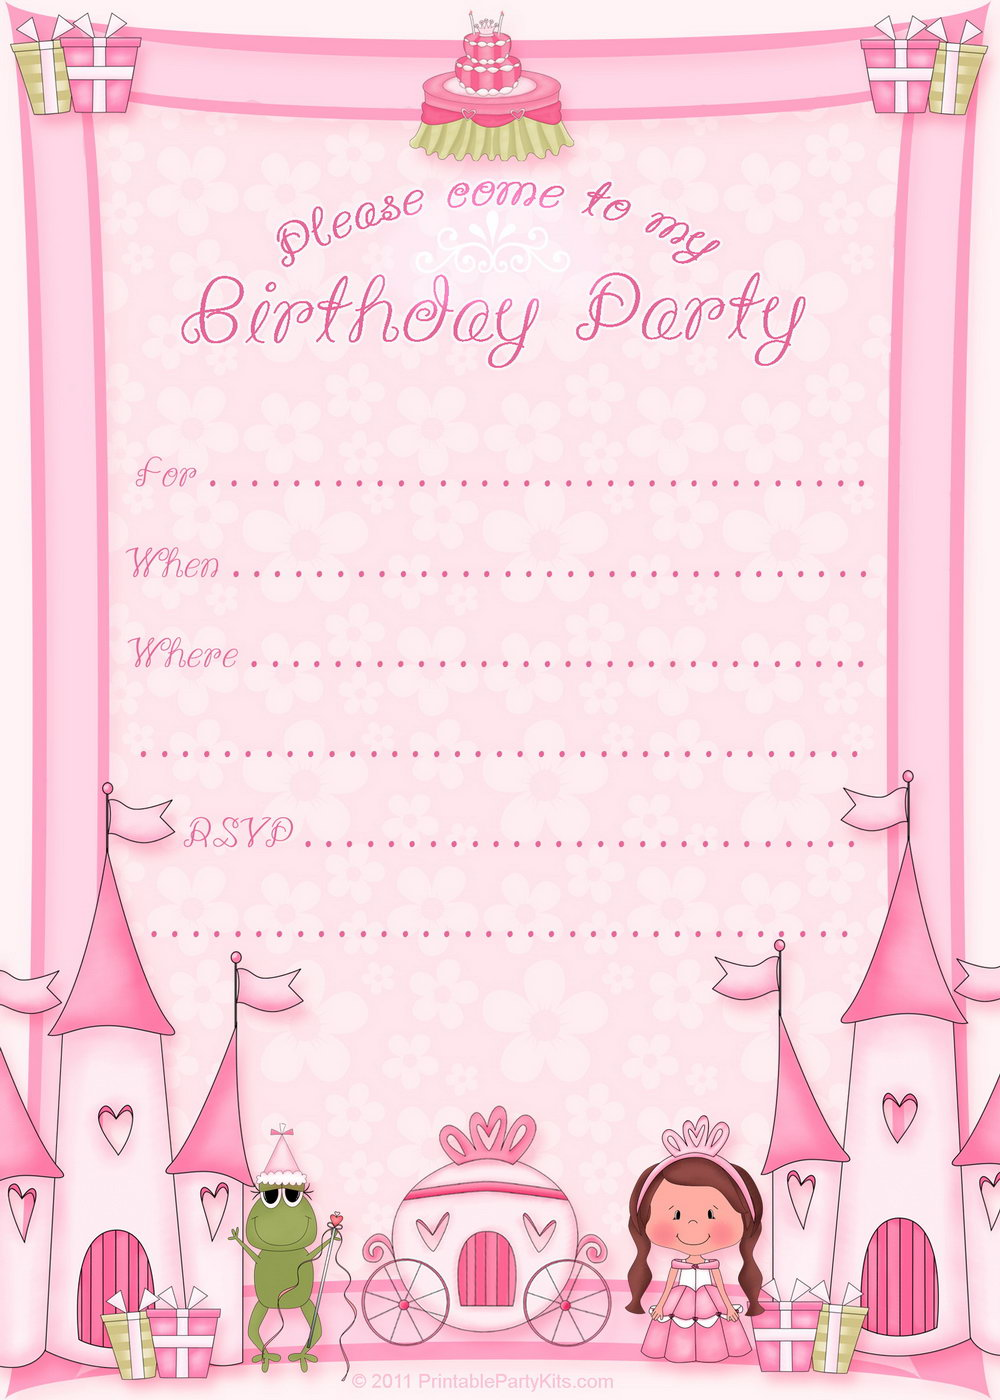 Birthday Party Invitation Template Google Docs